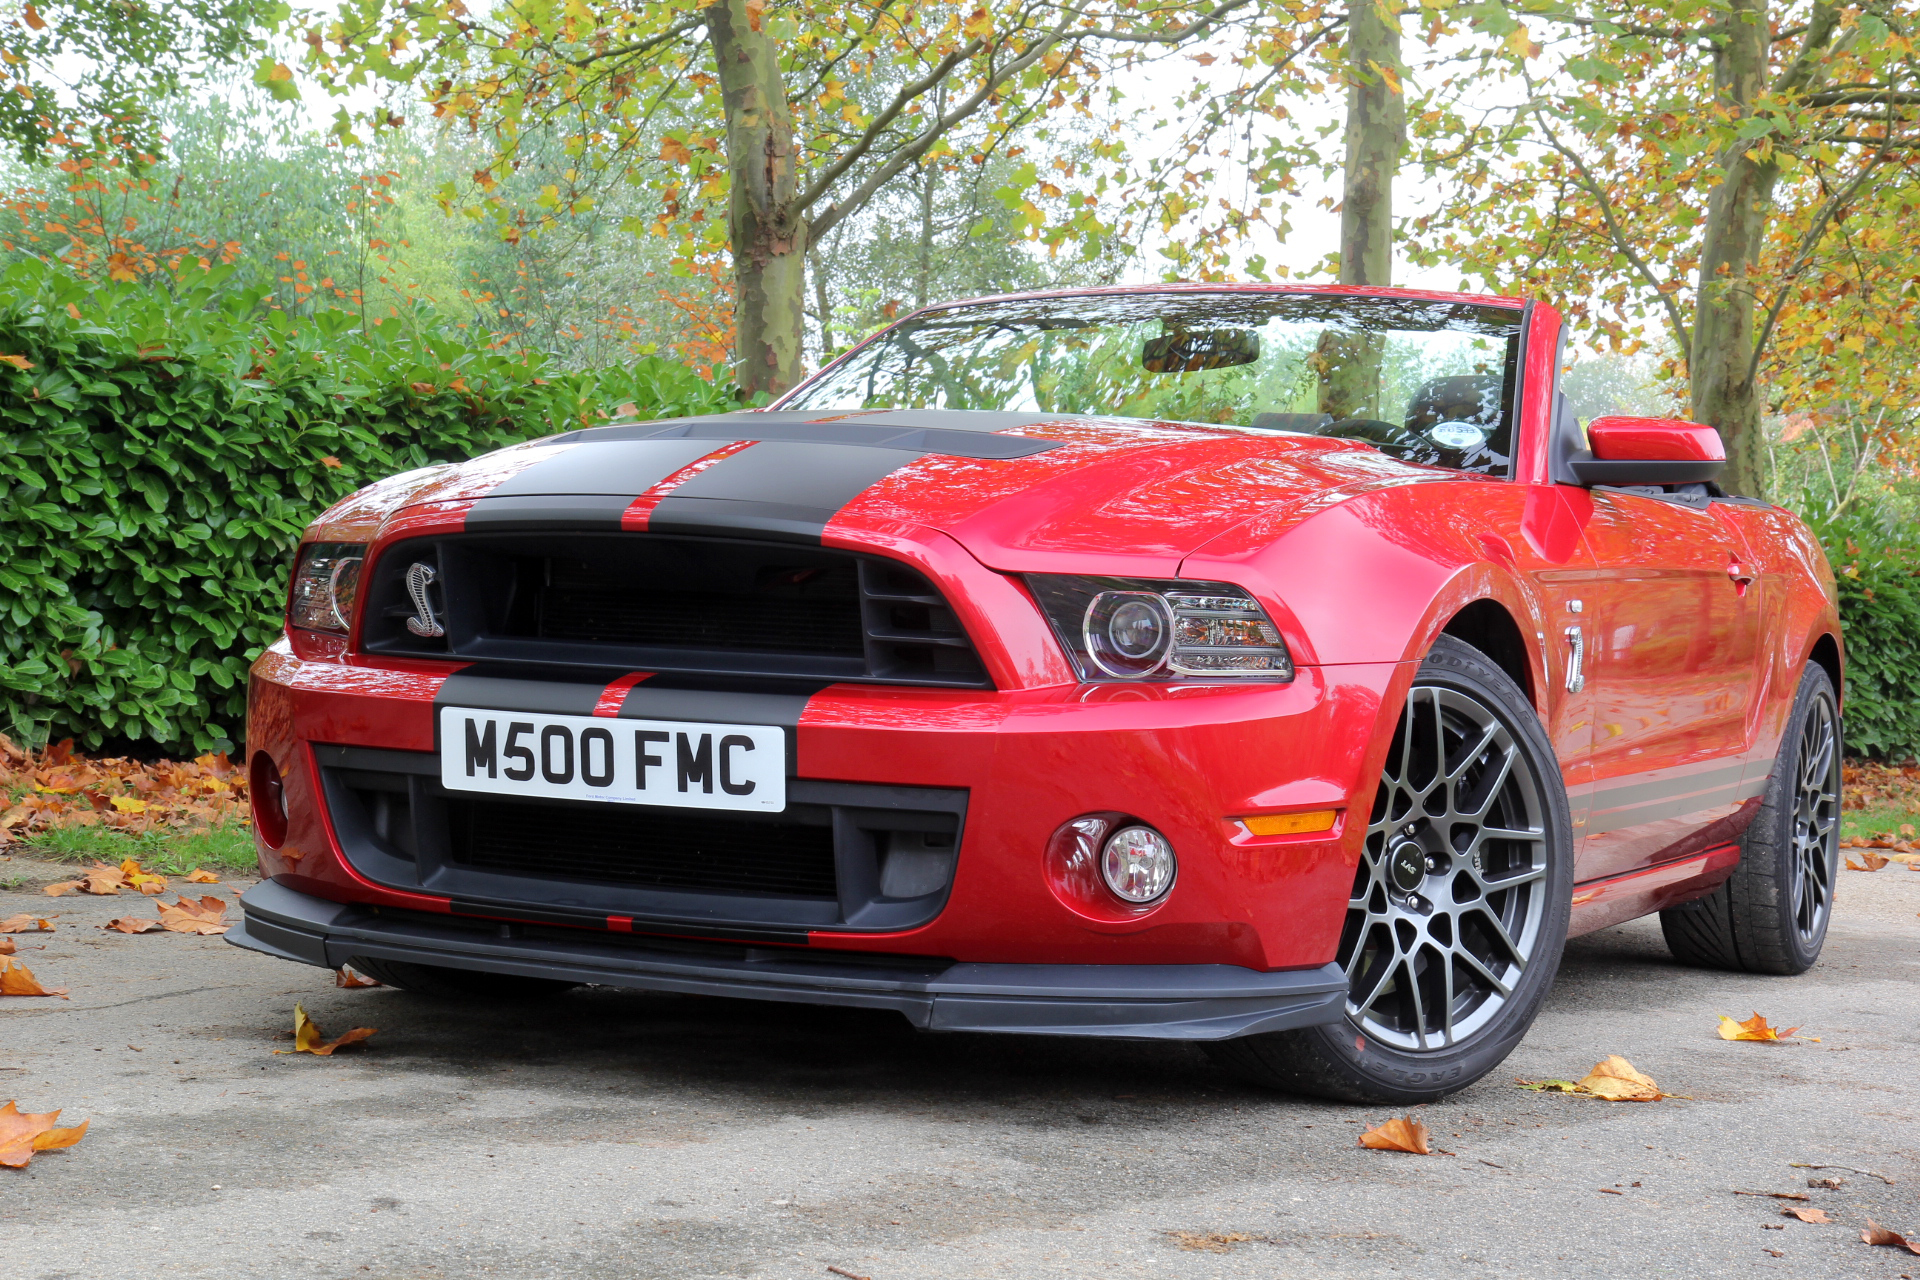 http://images.caradisiac.com/images/2/4/2/4/82424/S0-Essai-video-Shelby-GT500-animal-venimeux-278066.jpg